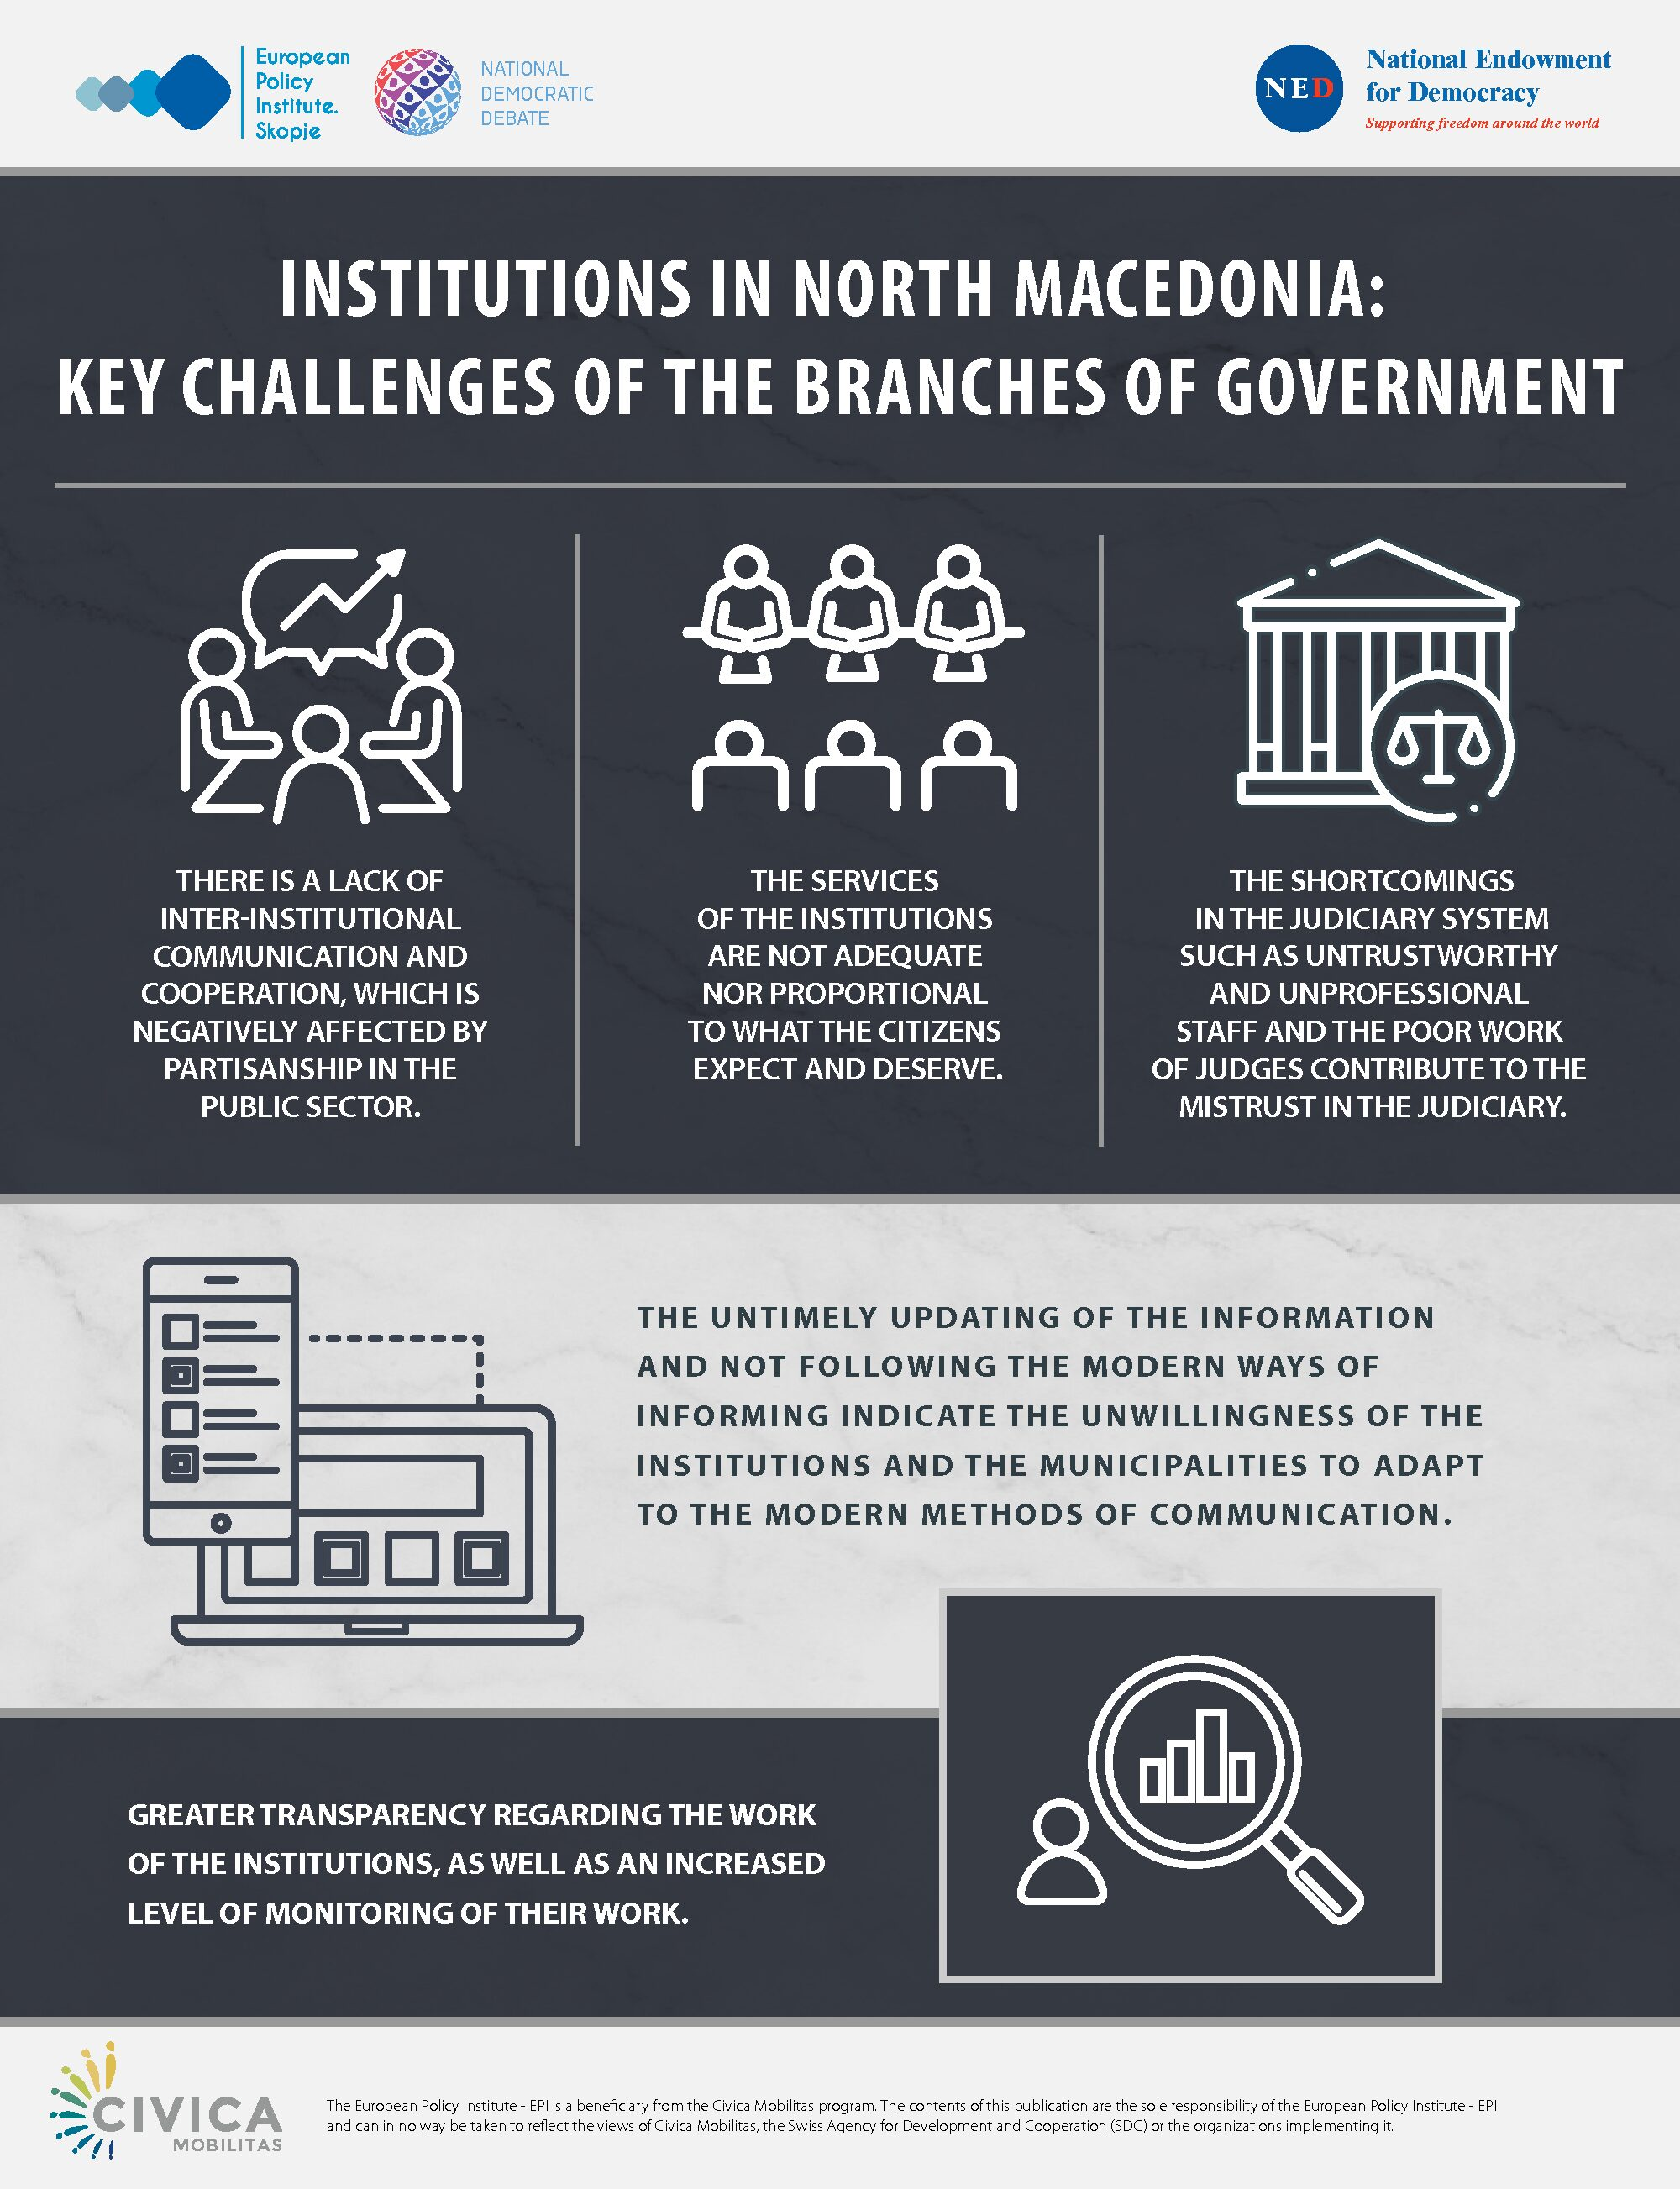 [Infographic] Institutions in North Macedonia: Key challenges of the branches of government